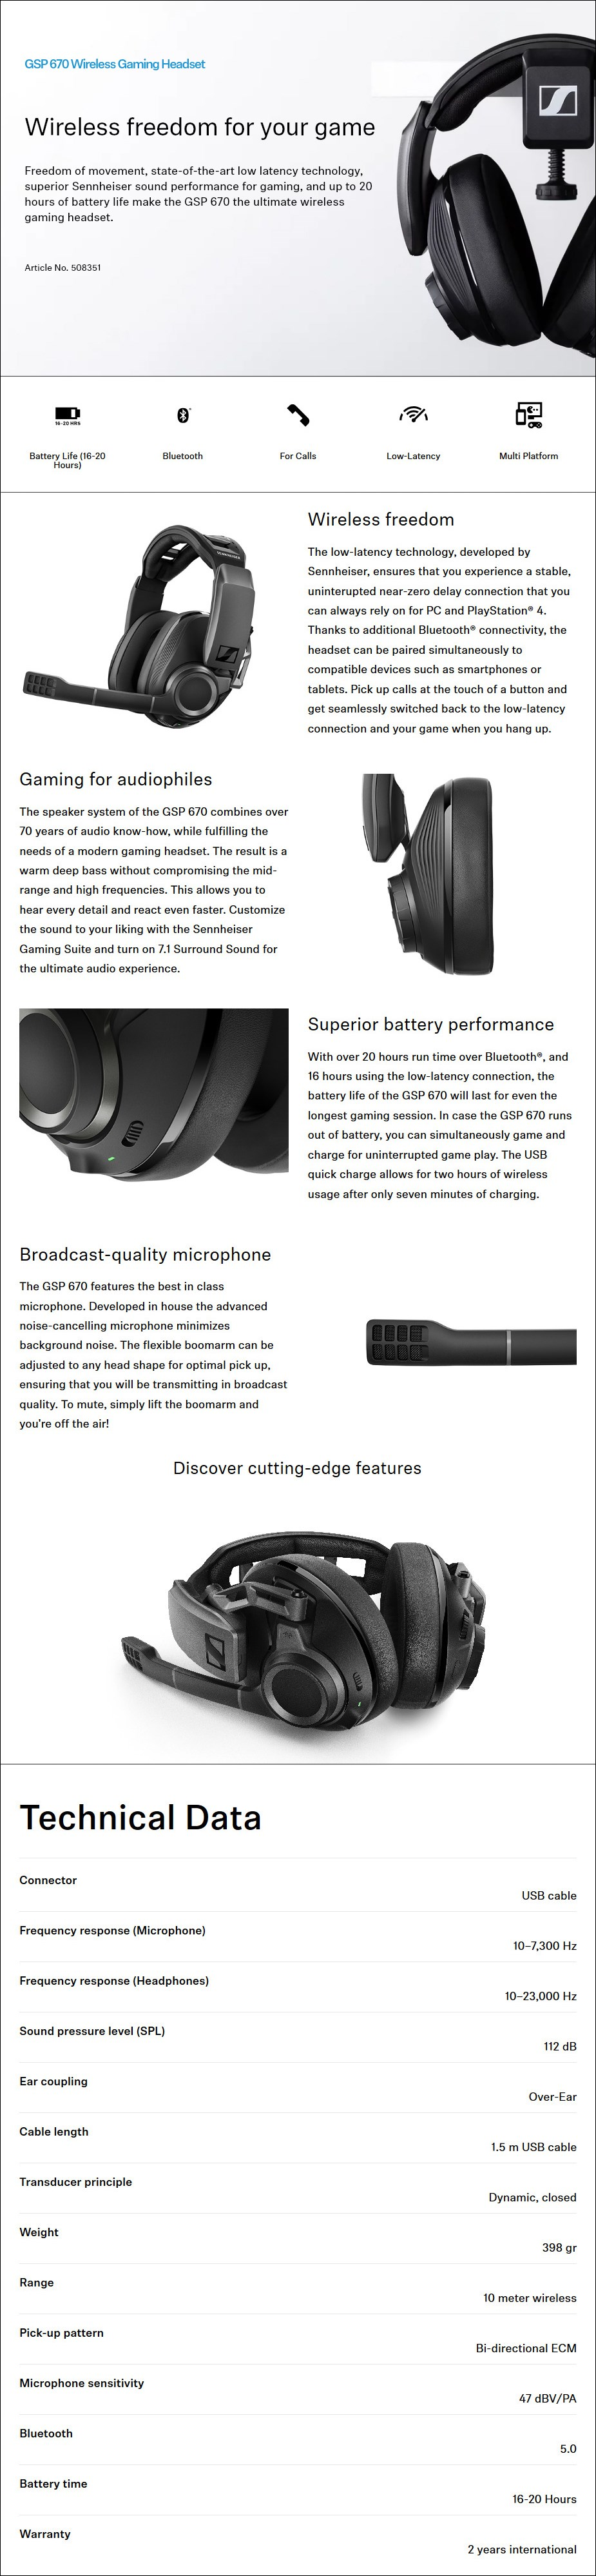 Sennheiser GSP 670 Professional Wireless Gaming Headset - Overview 1